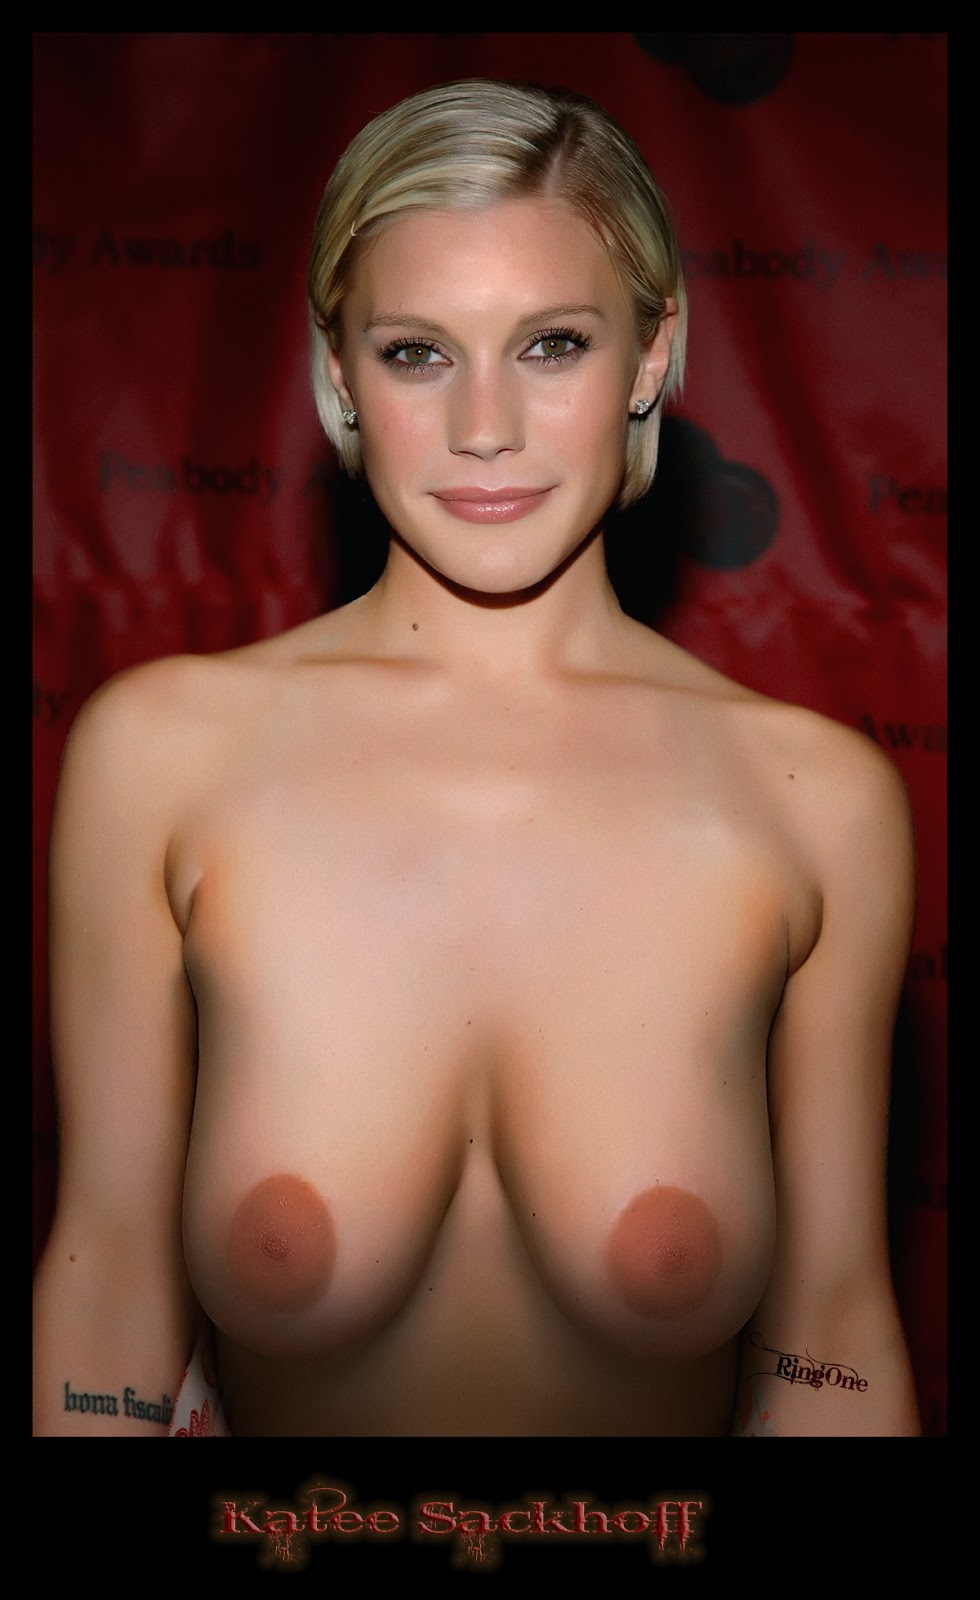 Katee Sackhoff Naked Pictures